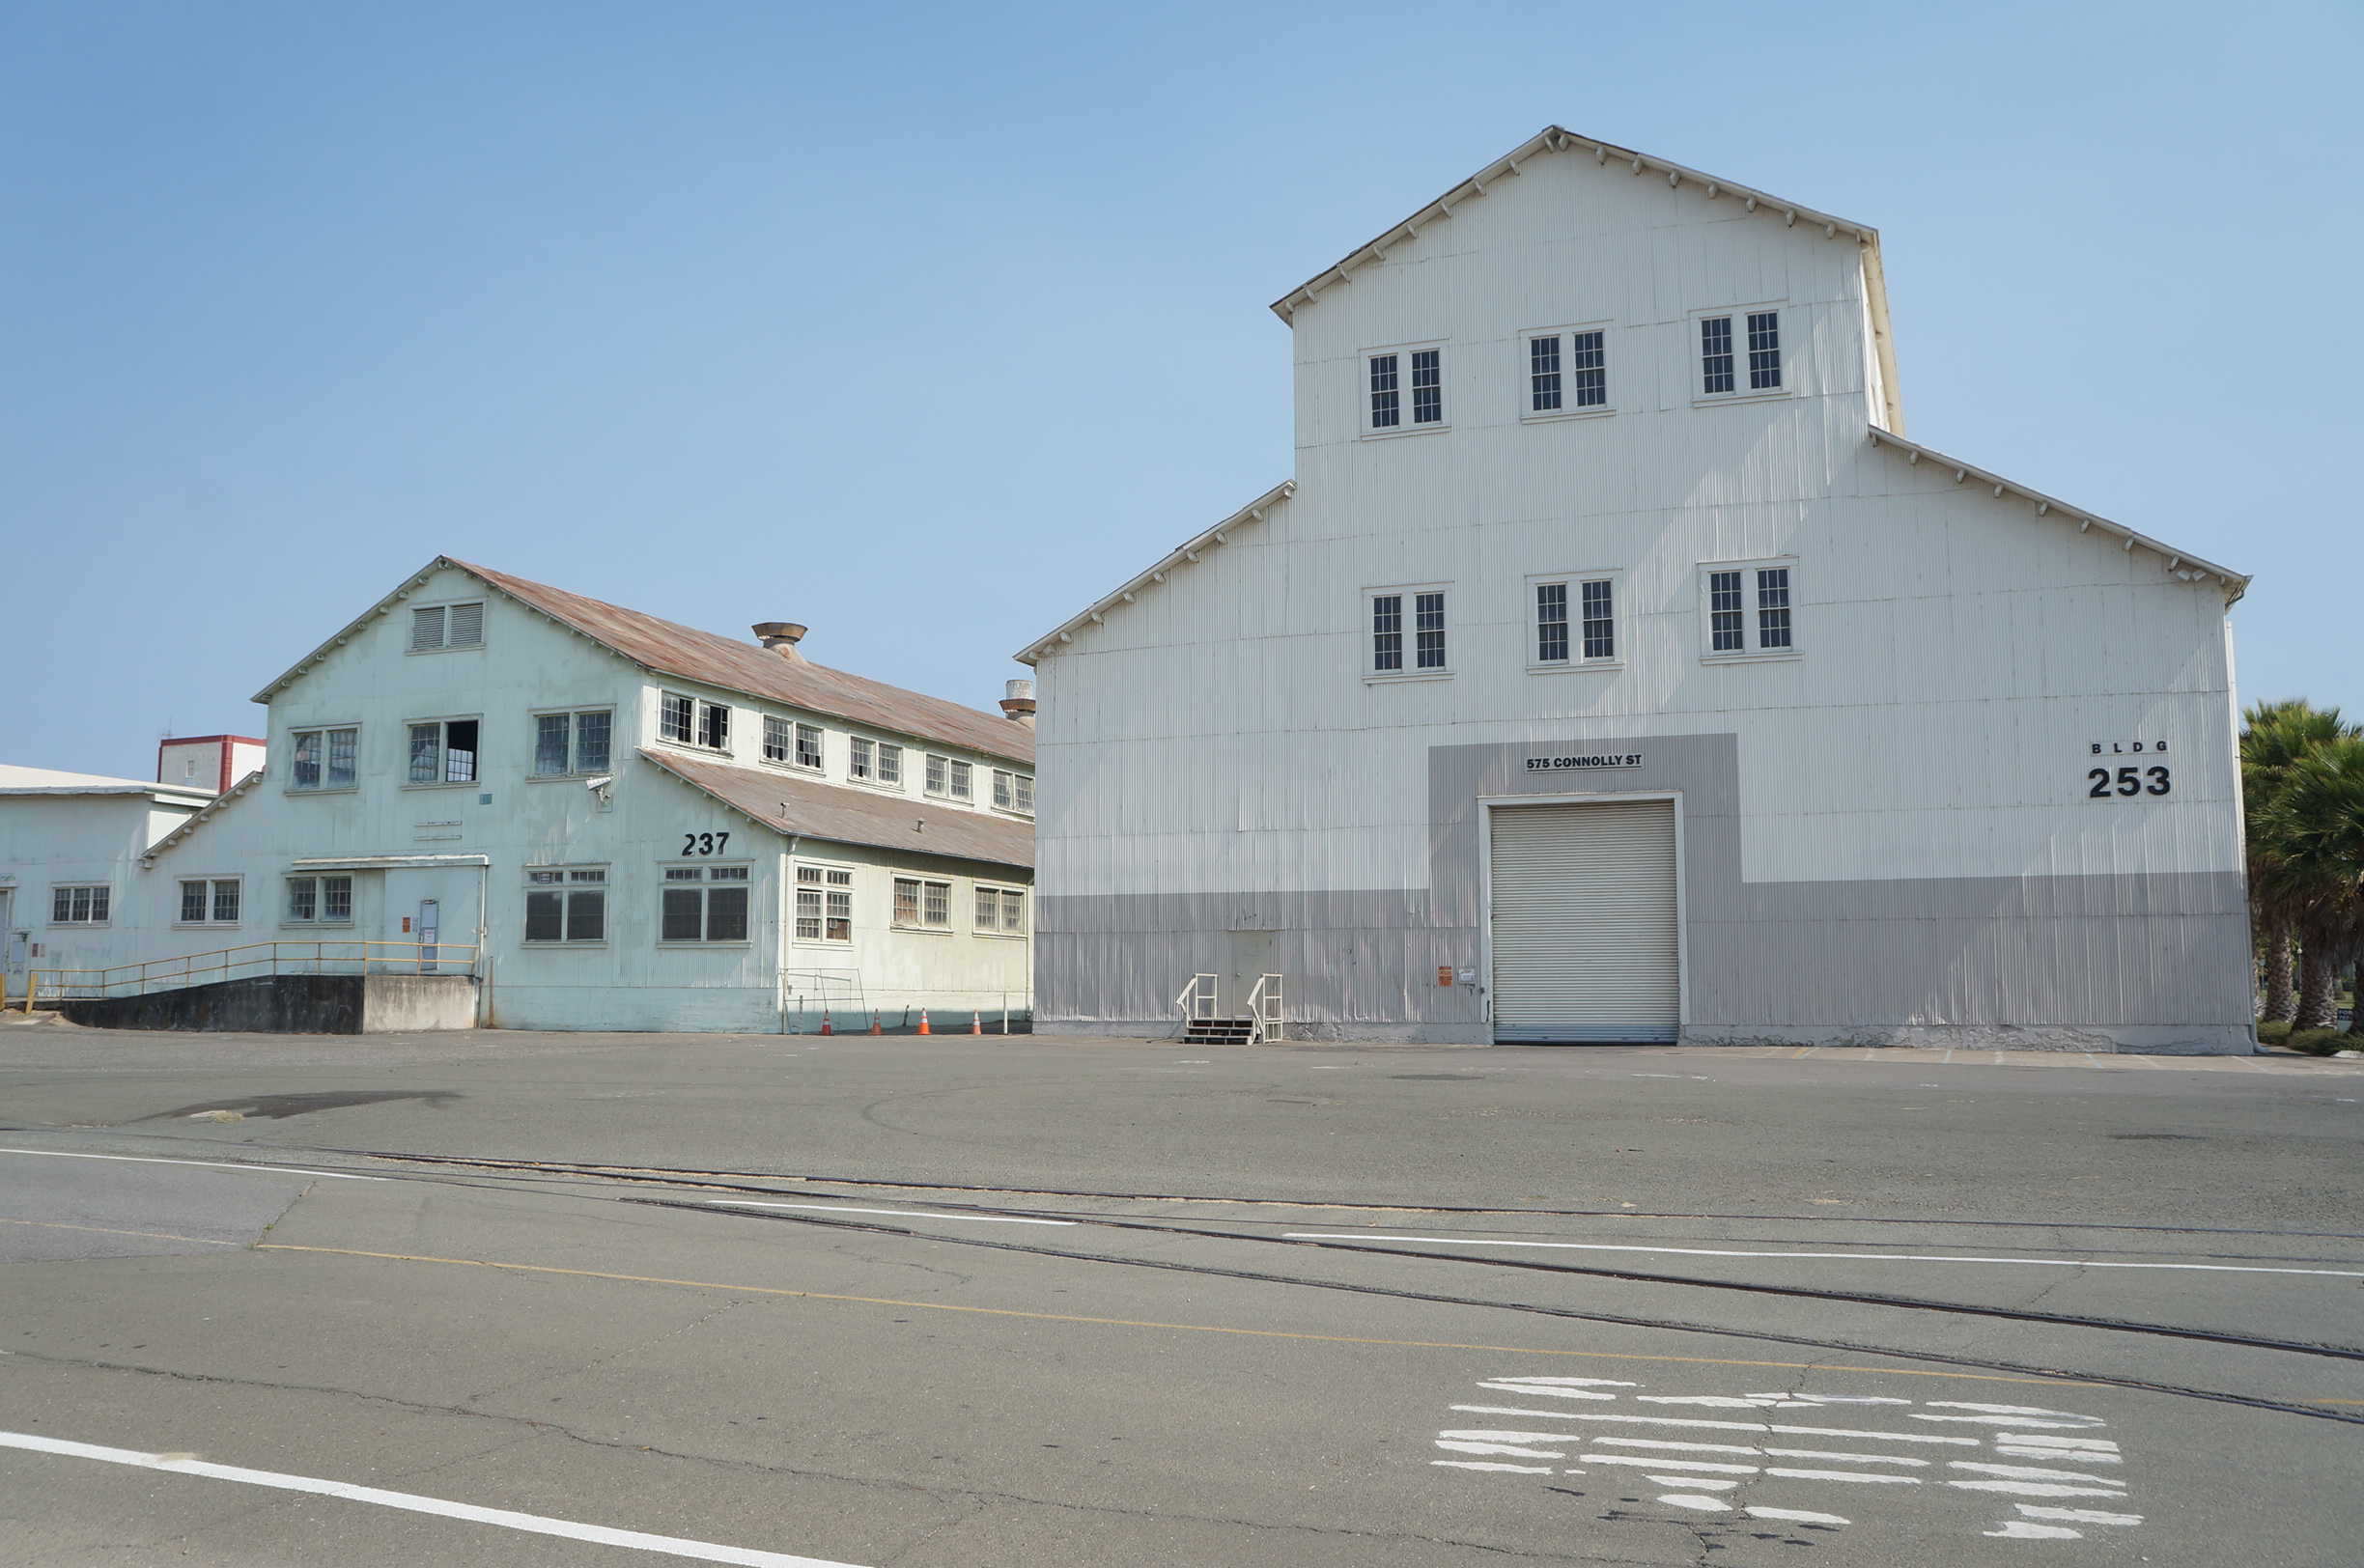 Mare Island Building 237 and 253